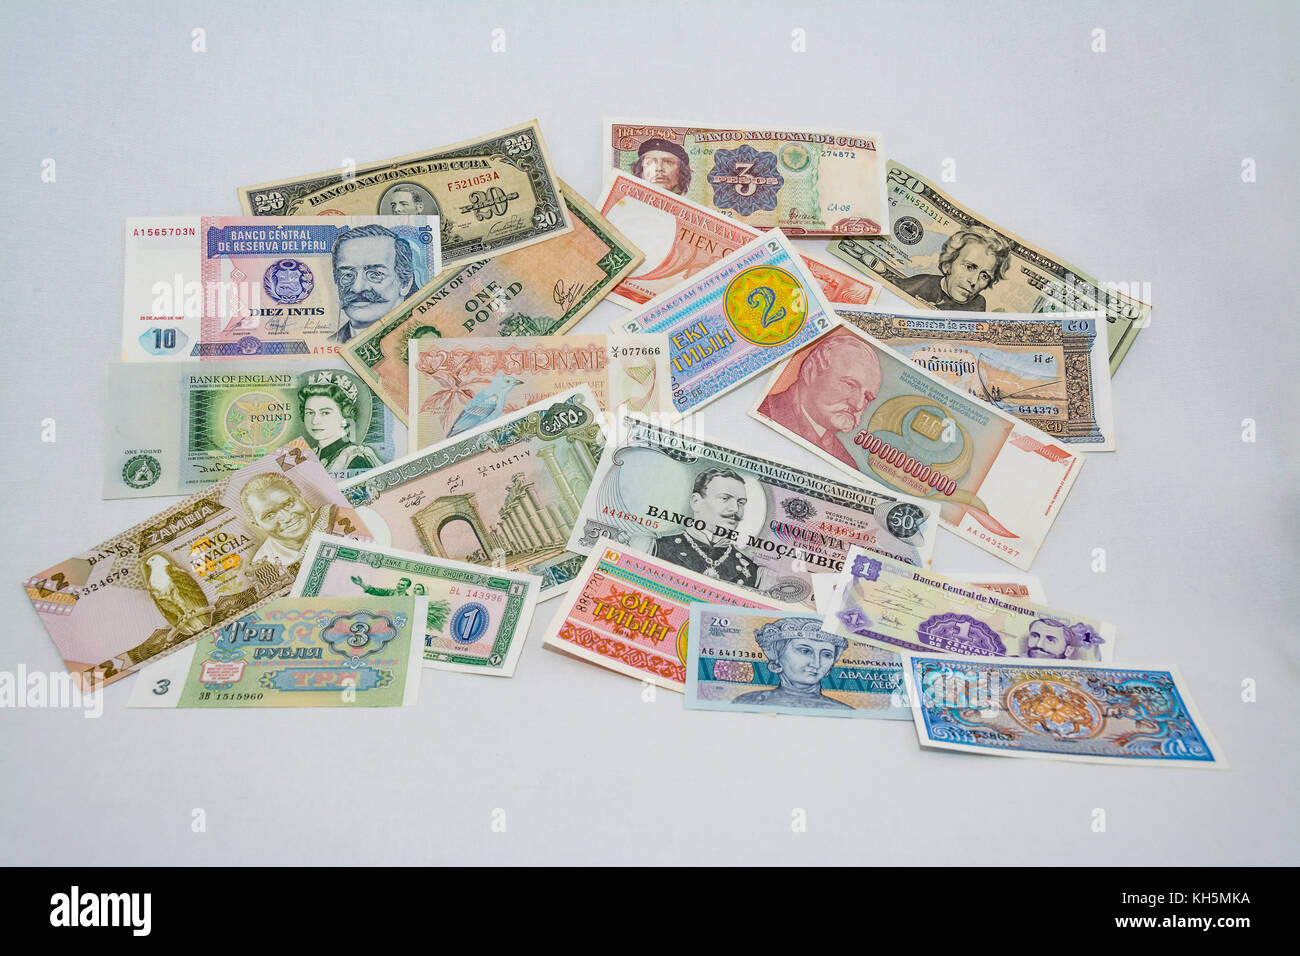 Various currencies stock photos various currencies stock images collage of various old and new international currency banknotes stock image buycottarizona Gallery